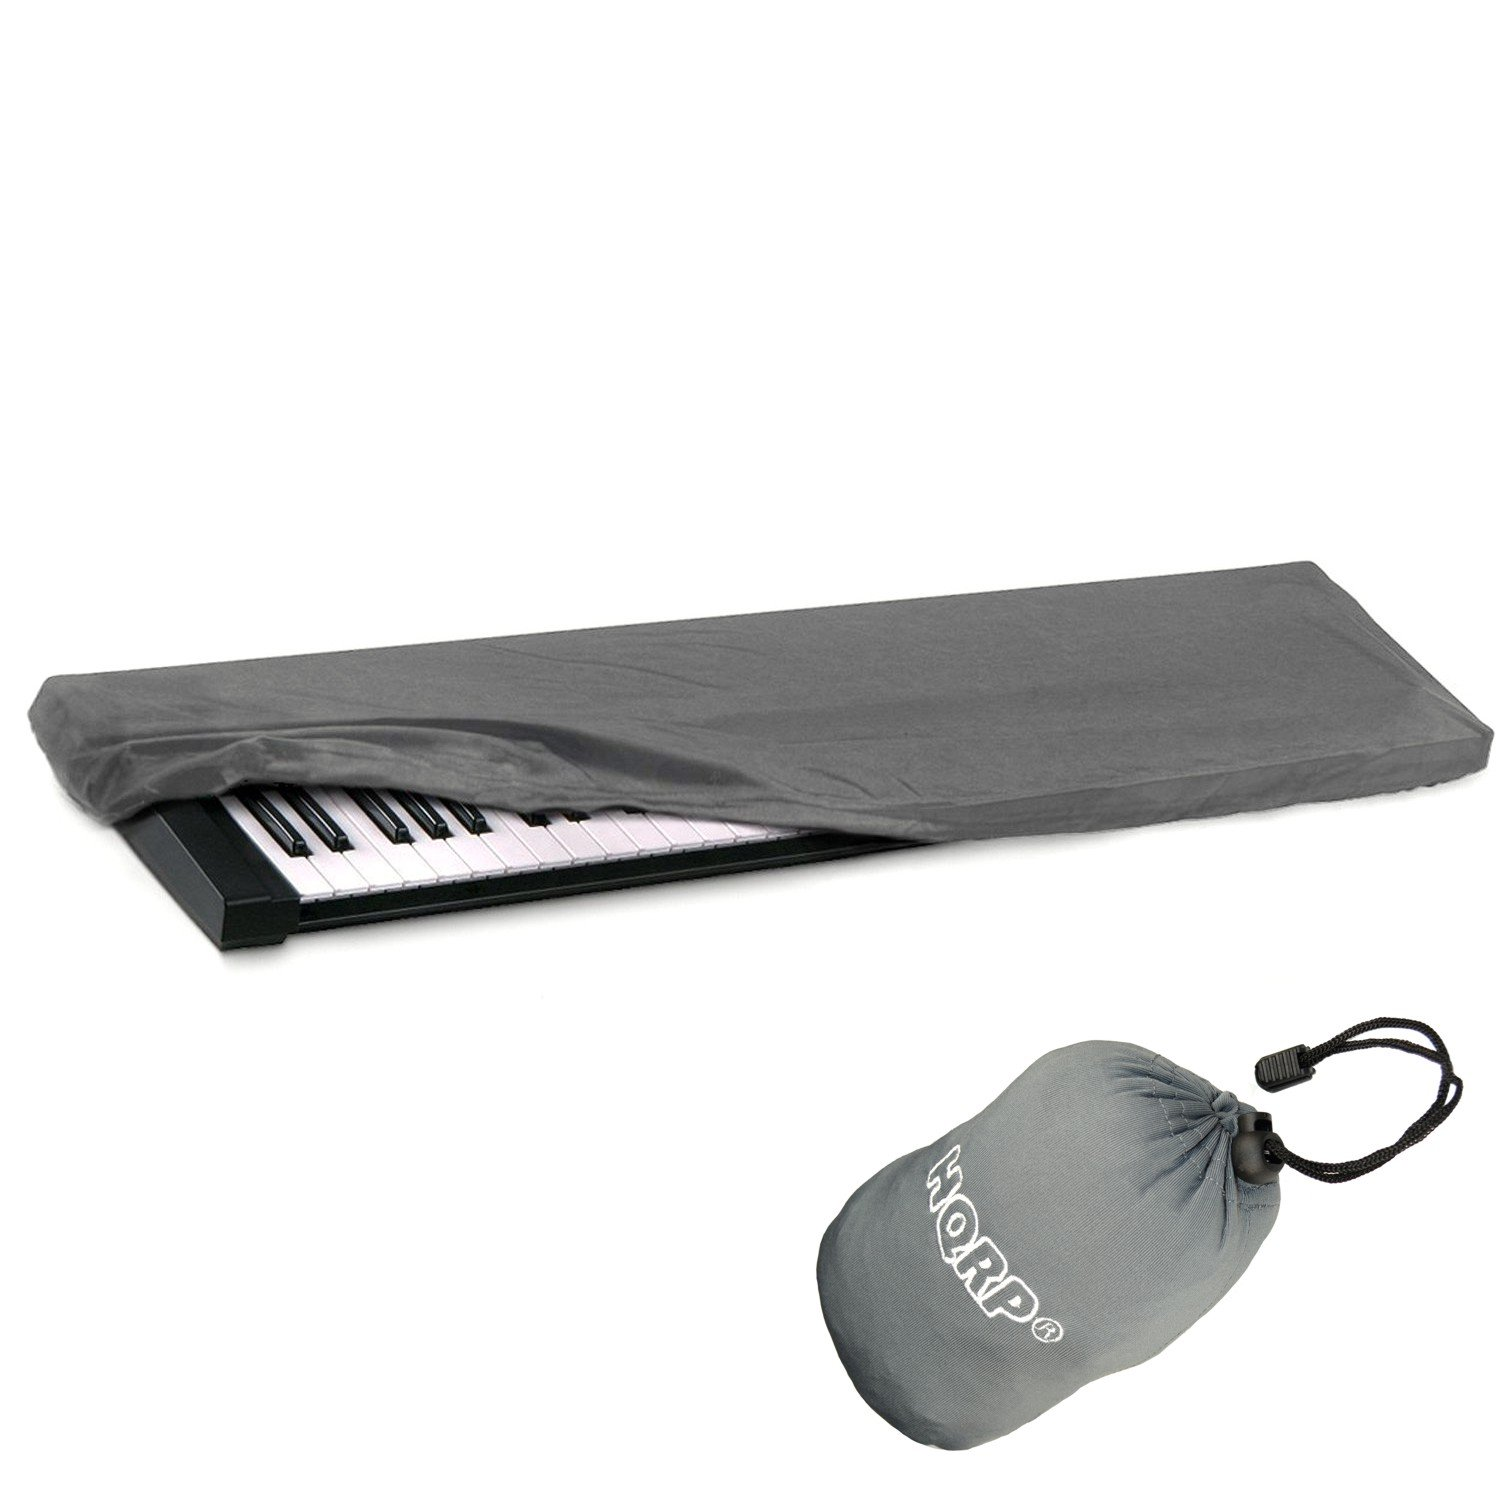 HQRP Elastic Dust Cover w/ Bag (Black) for Williams Legato / Allegro 2 Electronic Keyboard Digital Piano + HQRP Coaster 887774709011516